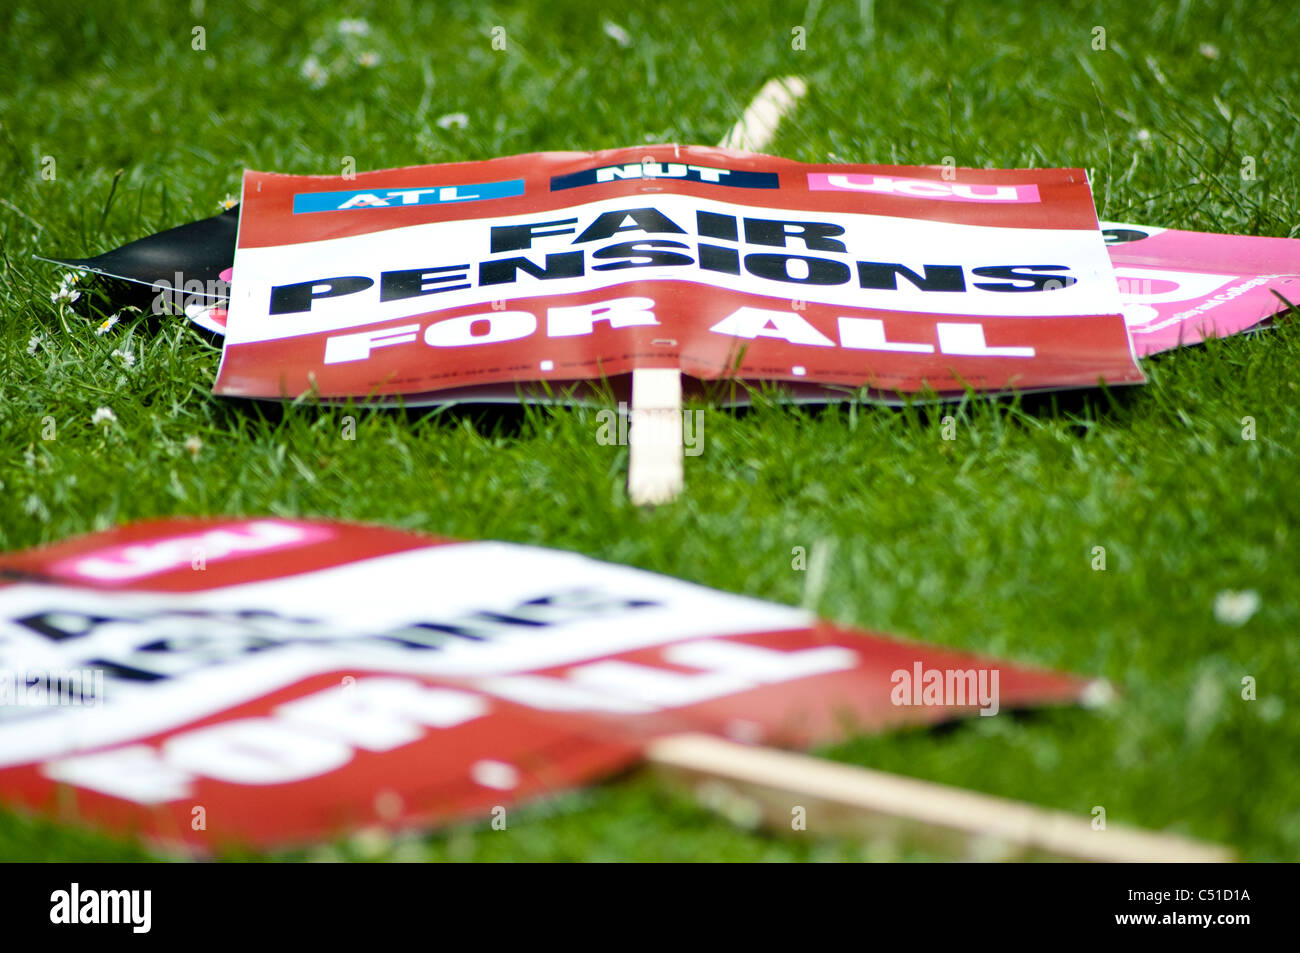 Public sector pensions strike, Placards, London, 30/06/2011, UK - Stock Image